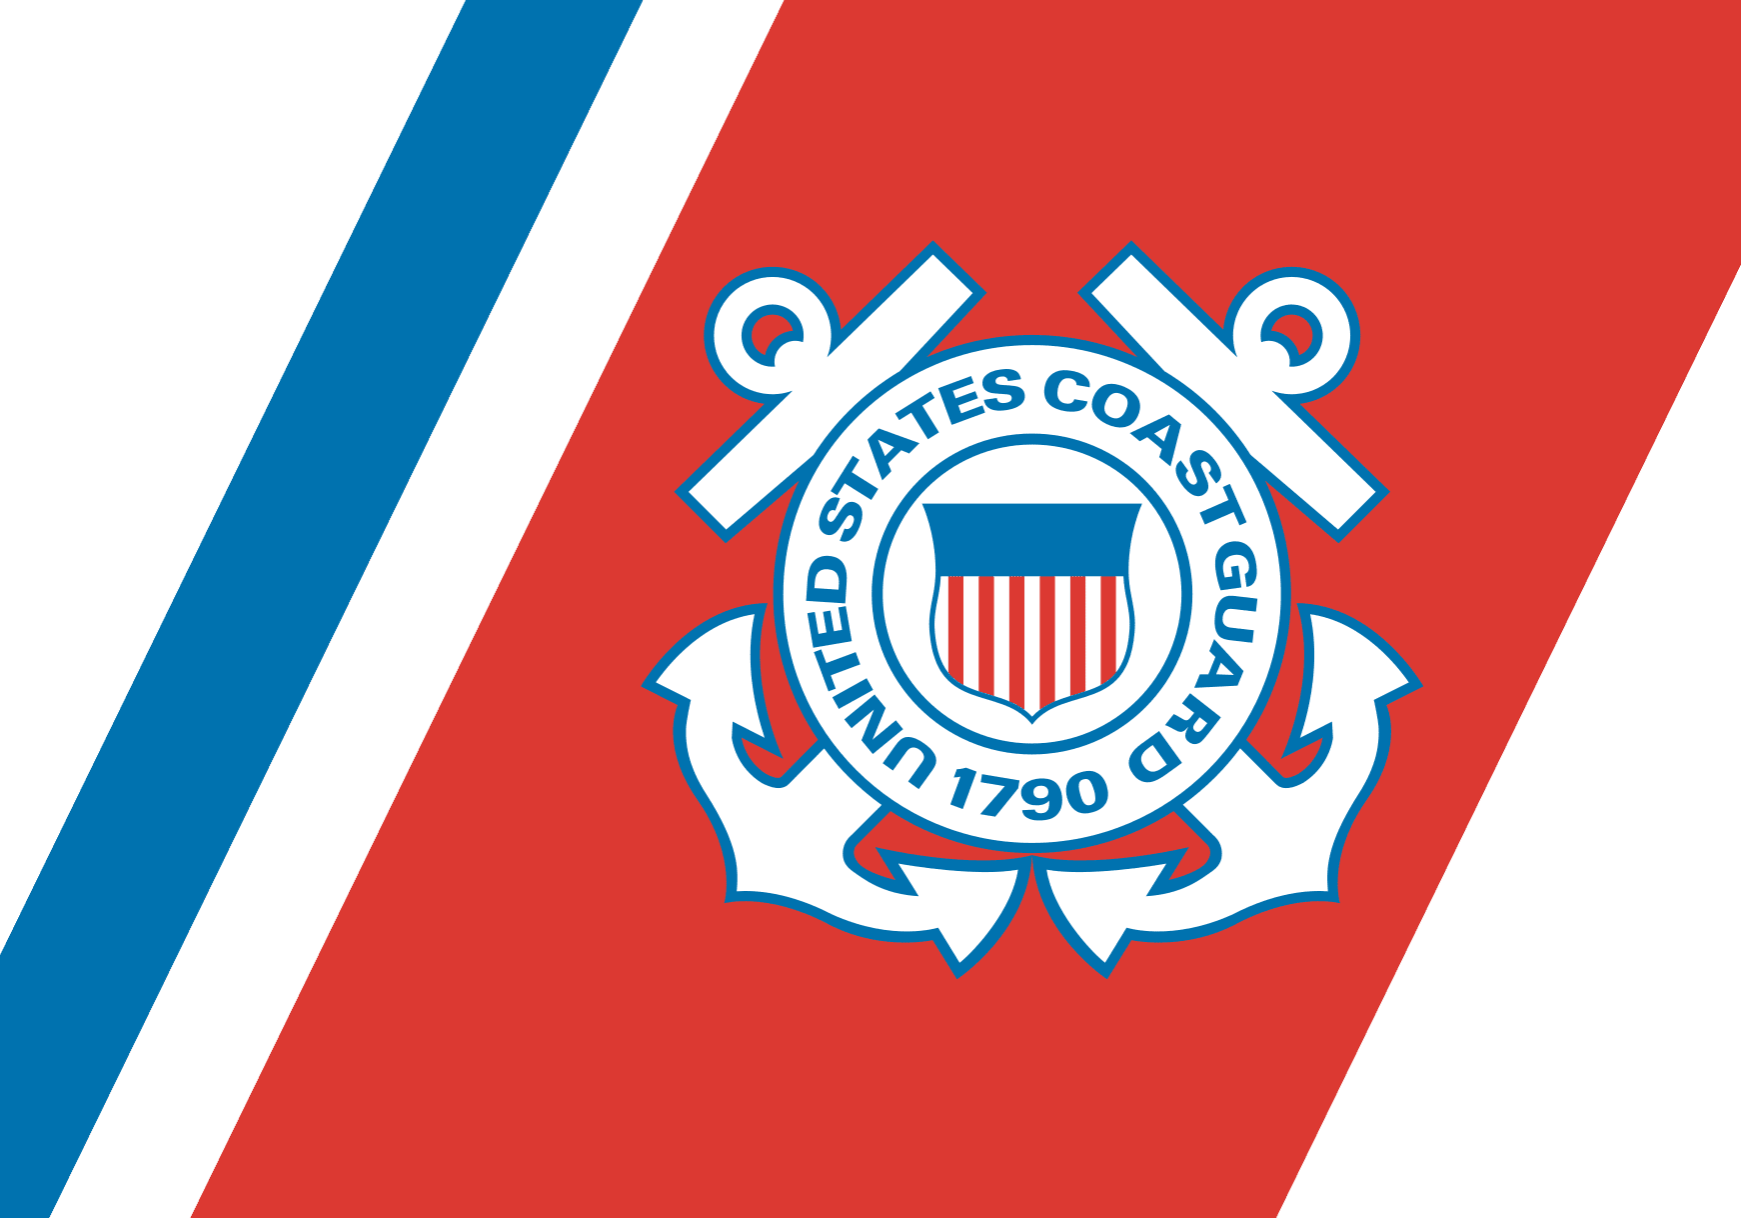 uscg approved